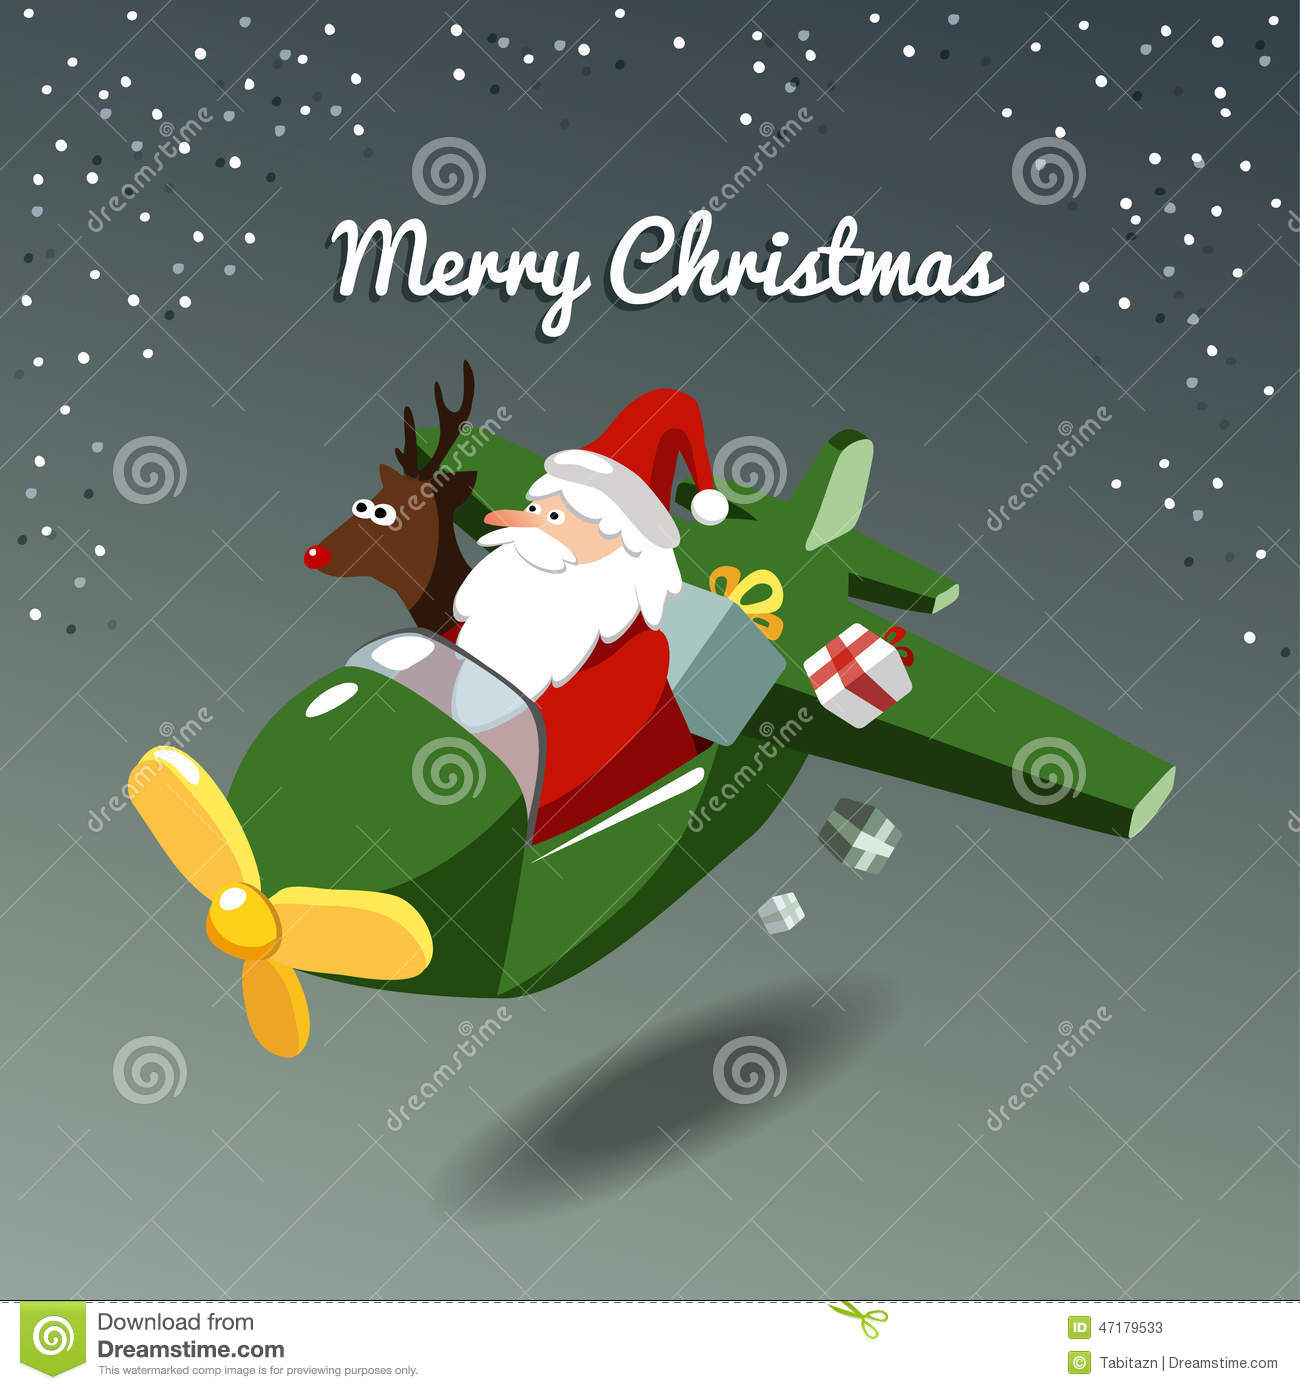 Christmas Card, Santa Claus And Reindeer Rudolph In The Plane Stock ...